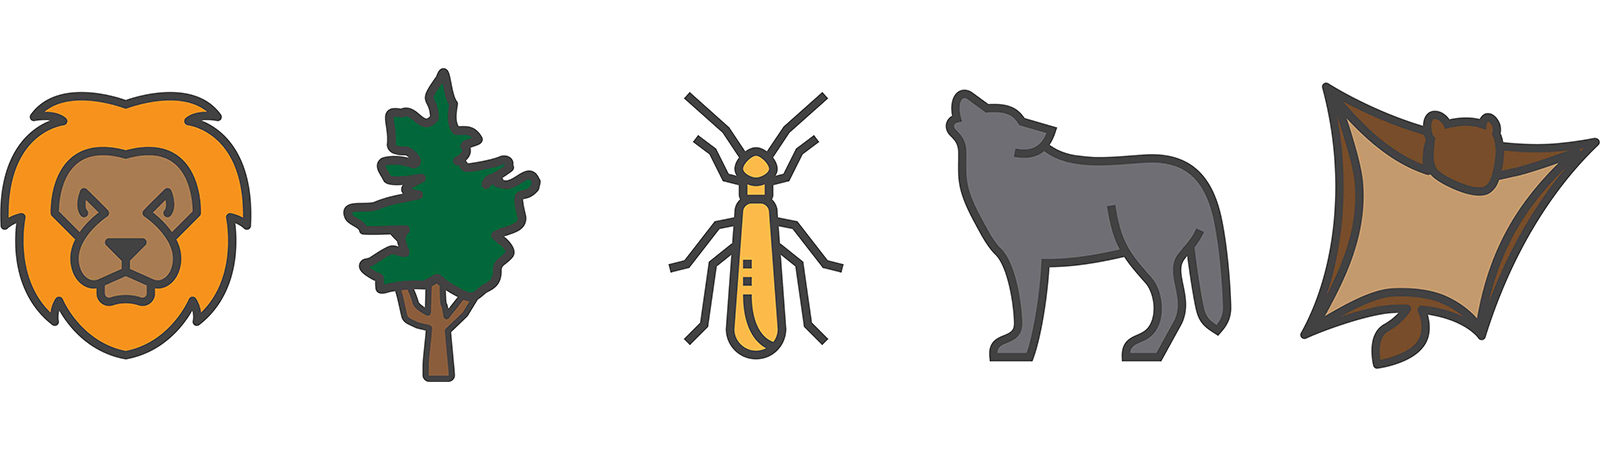 Wildlife icons to illustrate wildlife reearch.